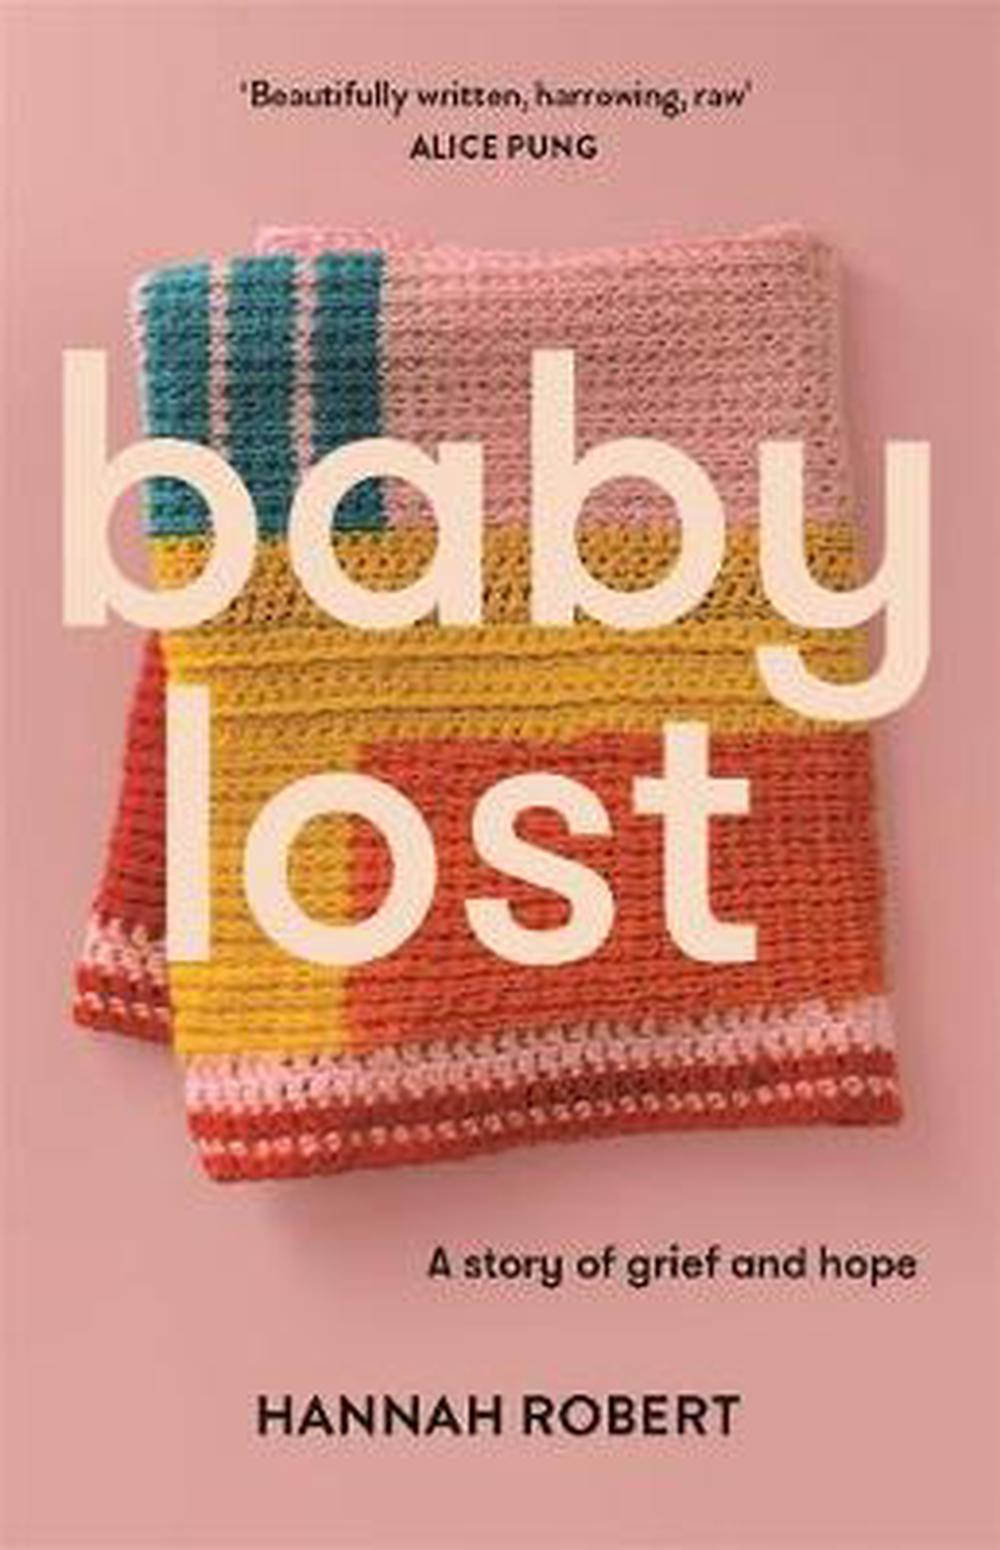 Baby Lost: A Story of Grief and Hope by Hannah Robert Paperback Book Free Shippi